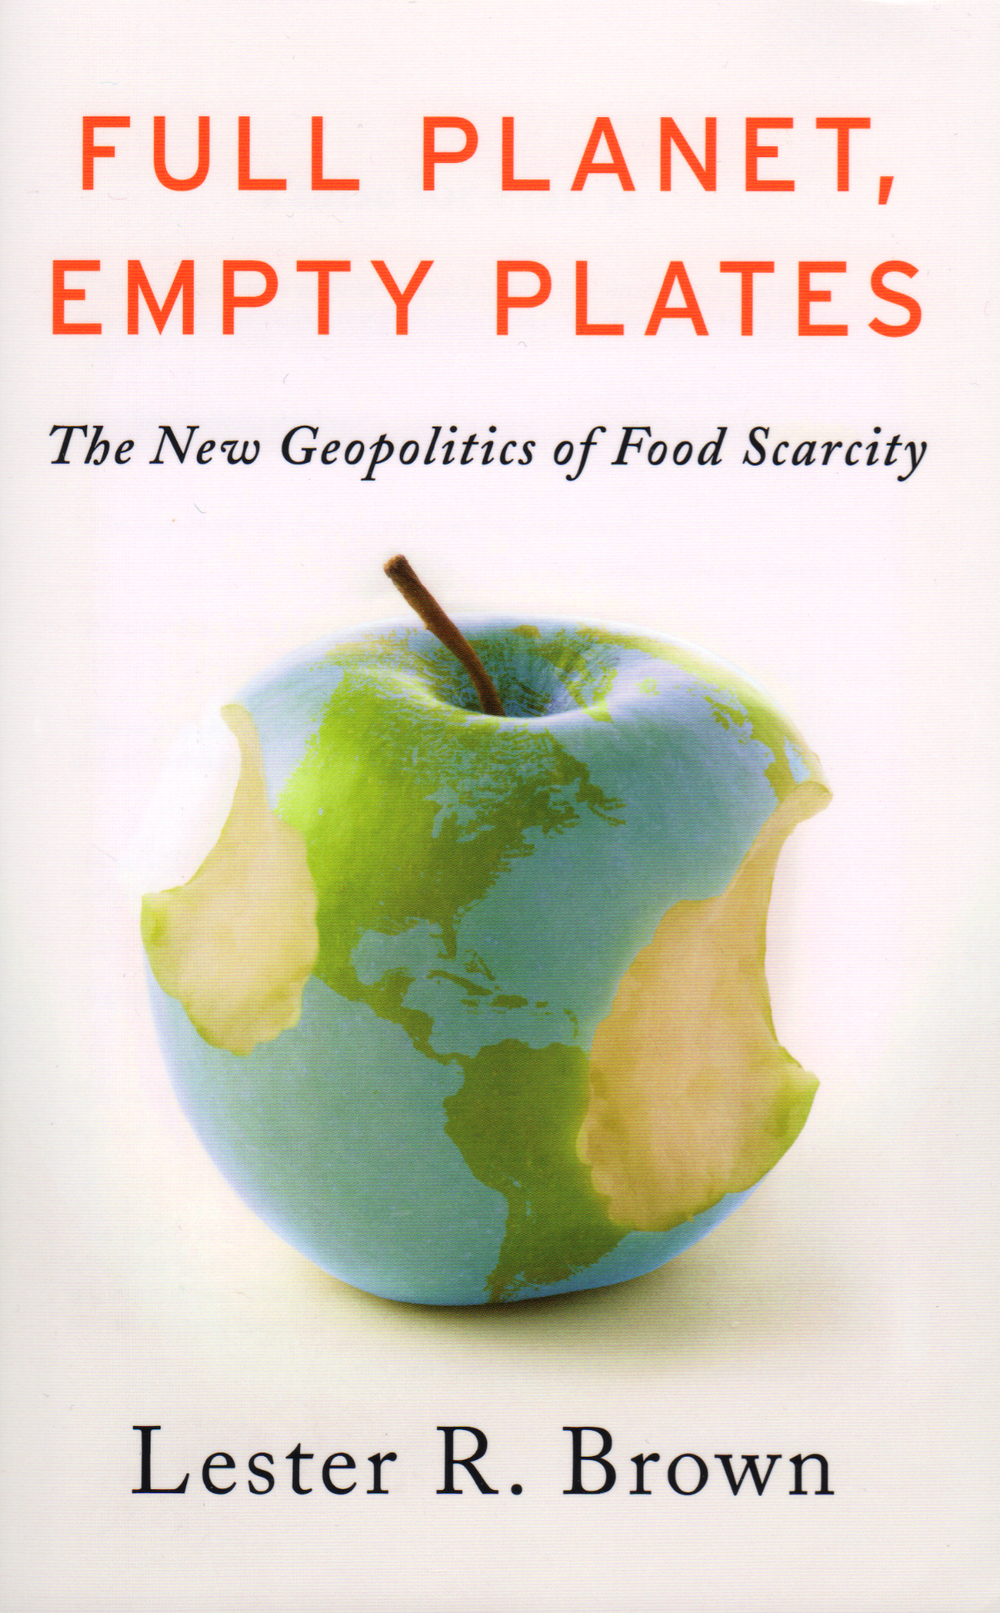 Full Planet, Empty Plates by Lester R. Brown